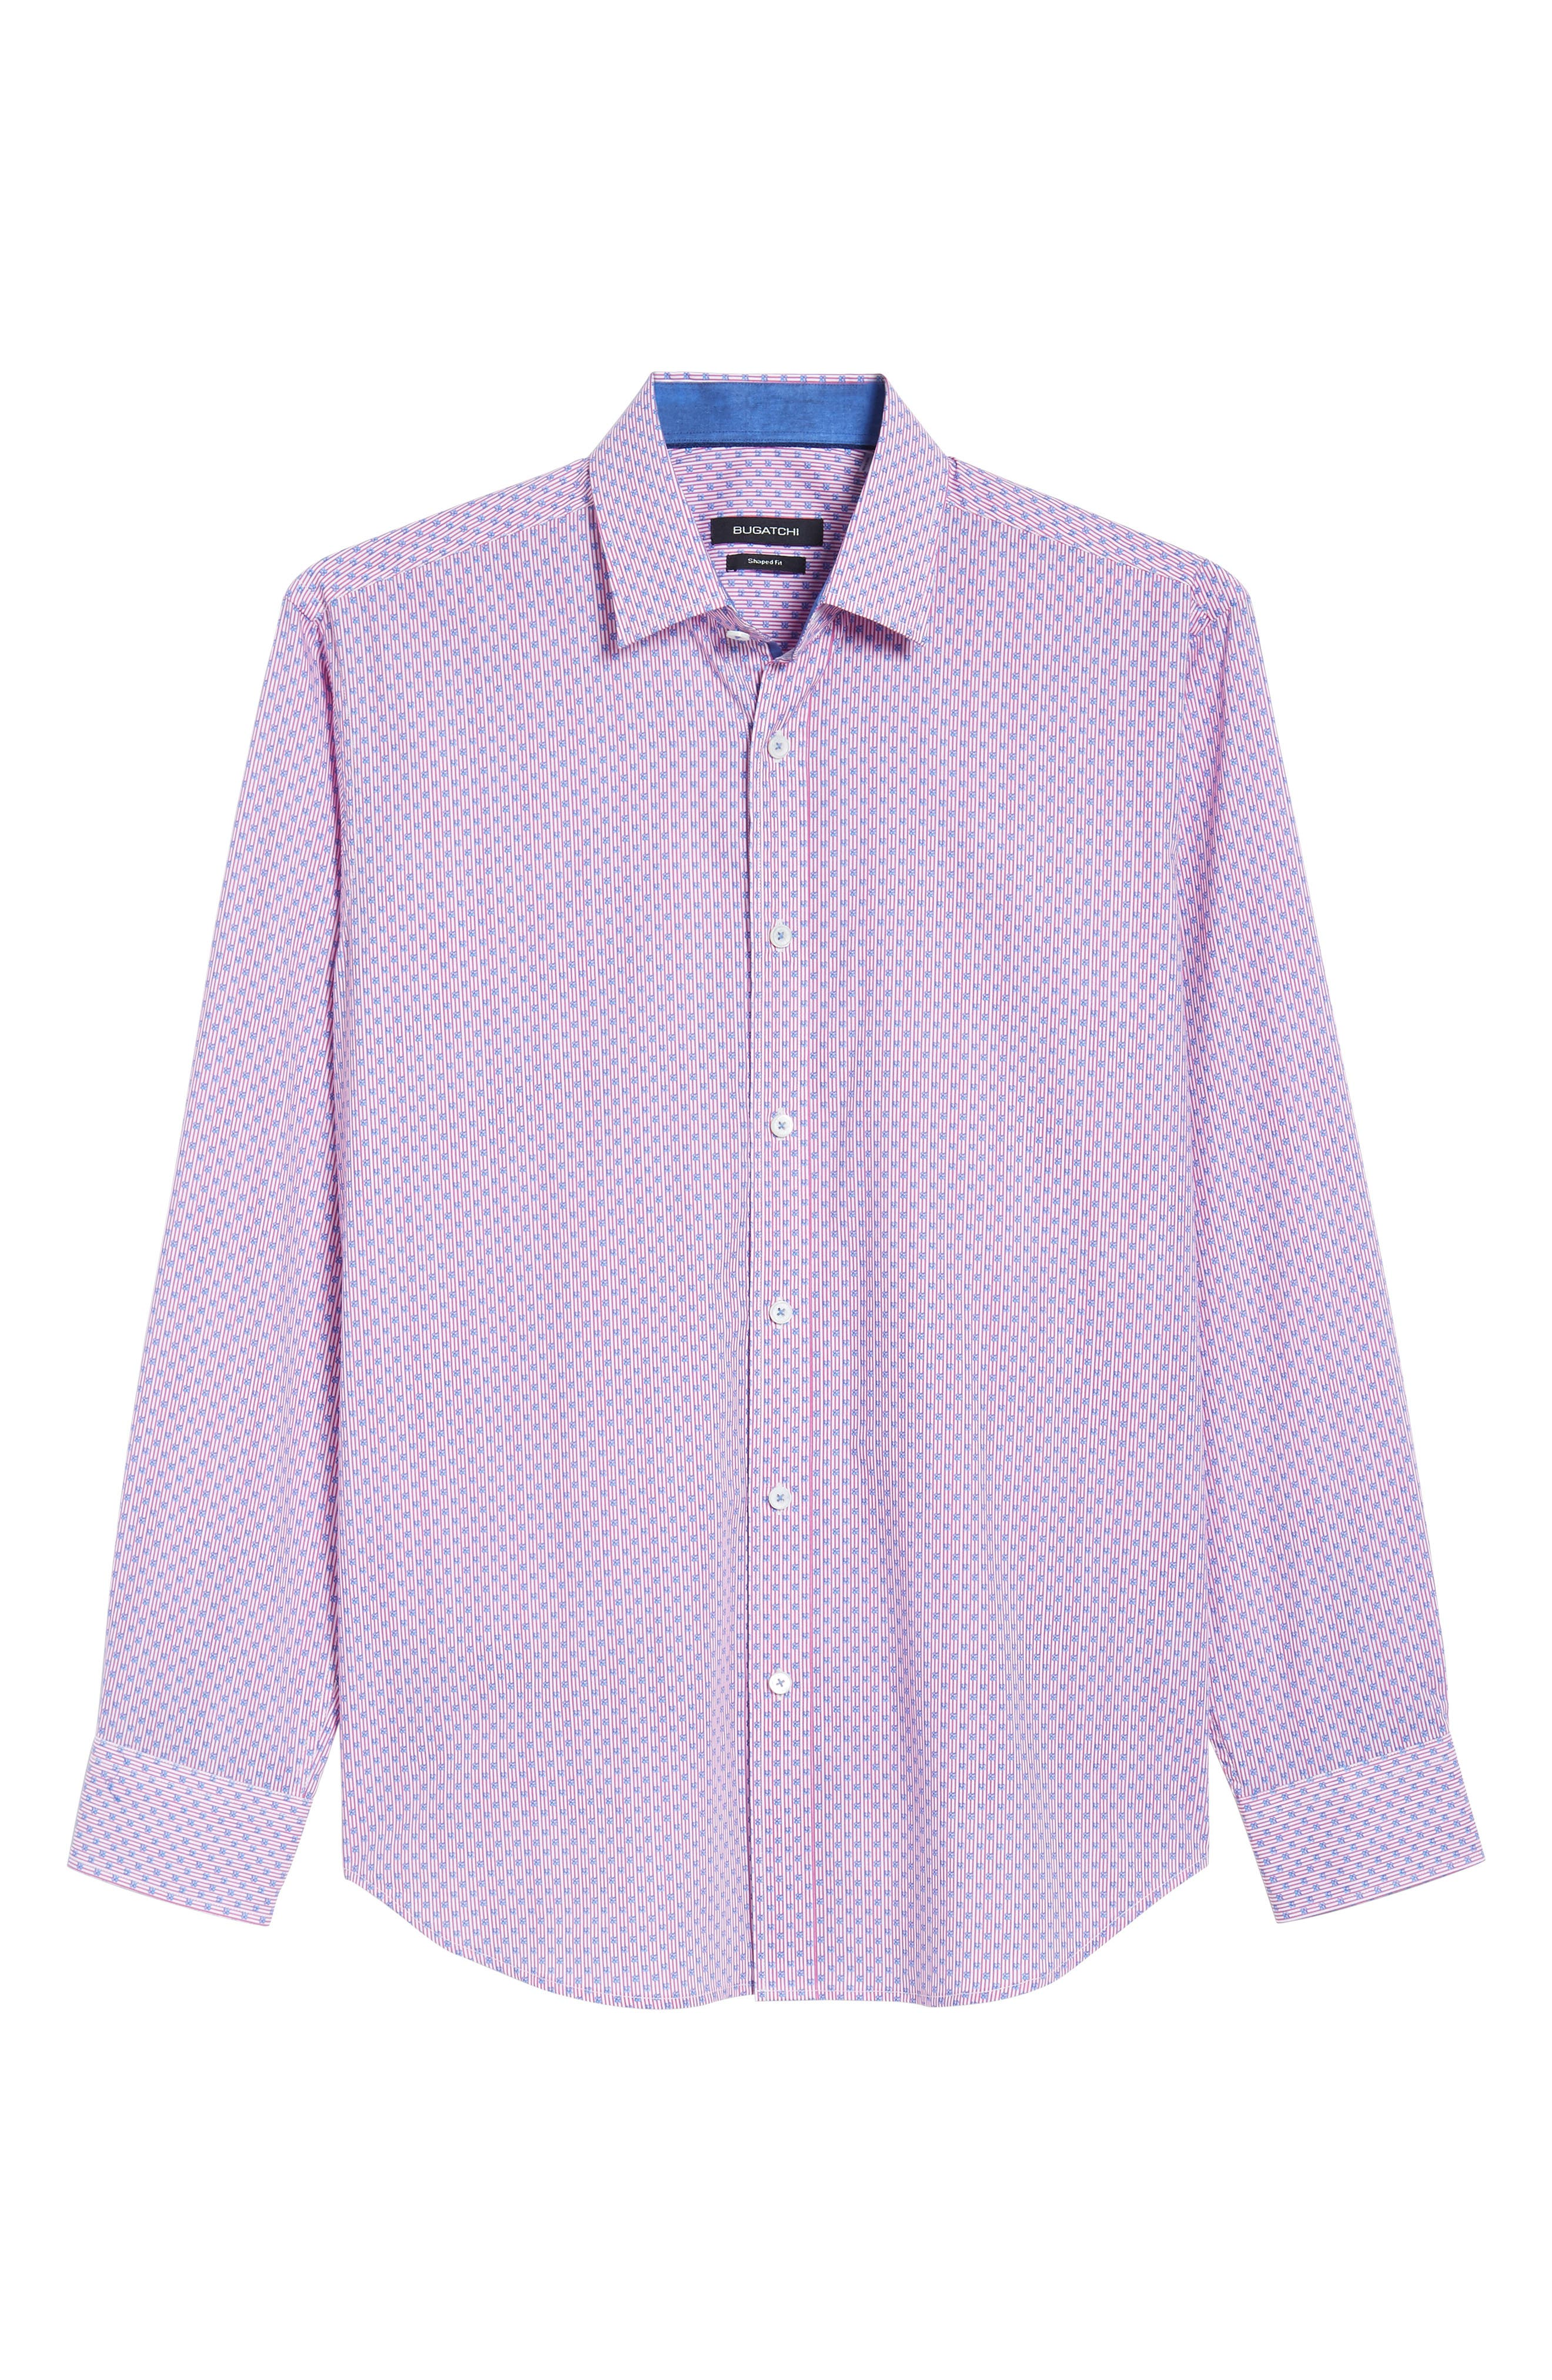 Flowers & Pinstripes Shaped Fit Sport Shirt,                             Alternate thumbnail 6, color,                             Pink